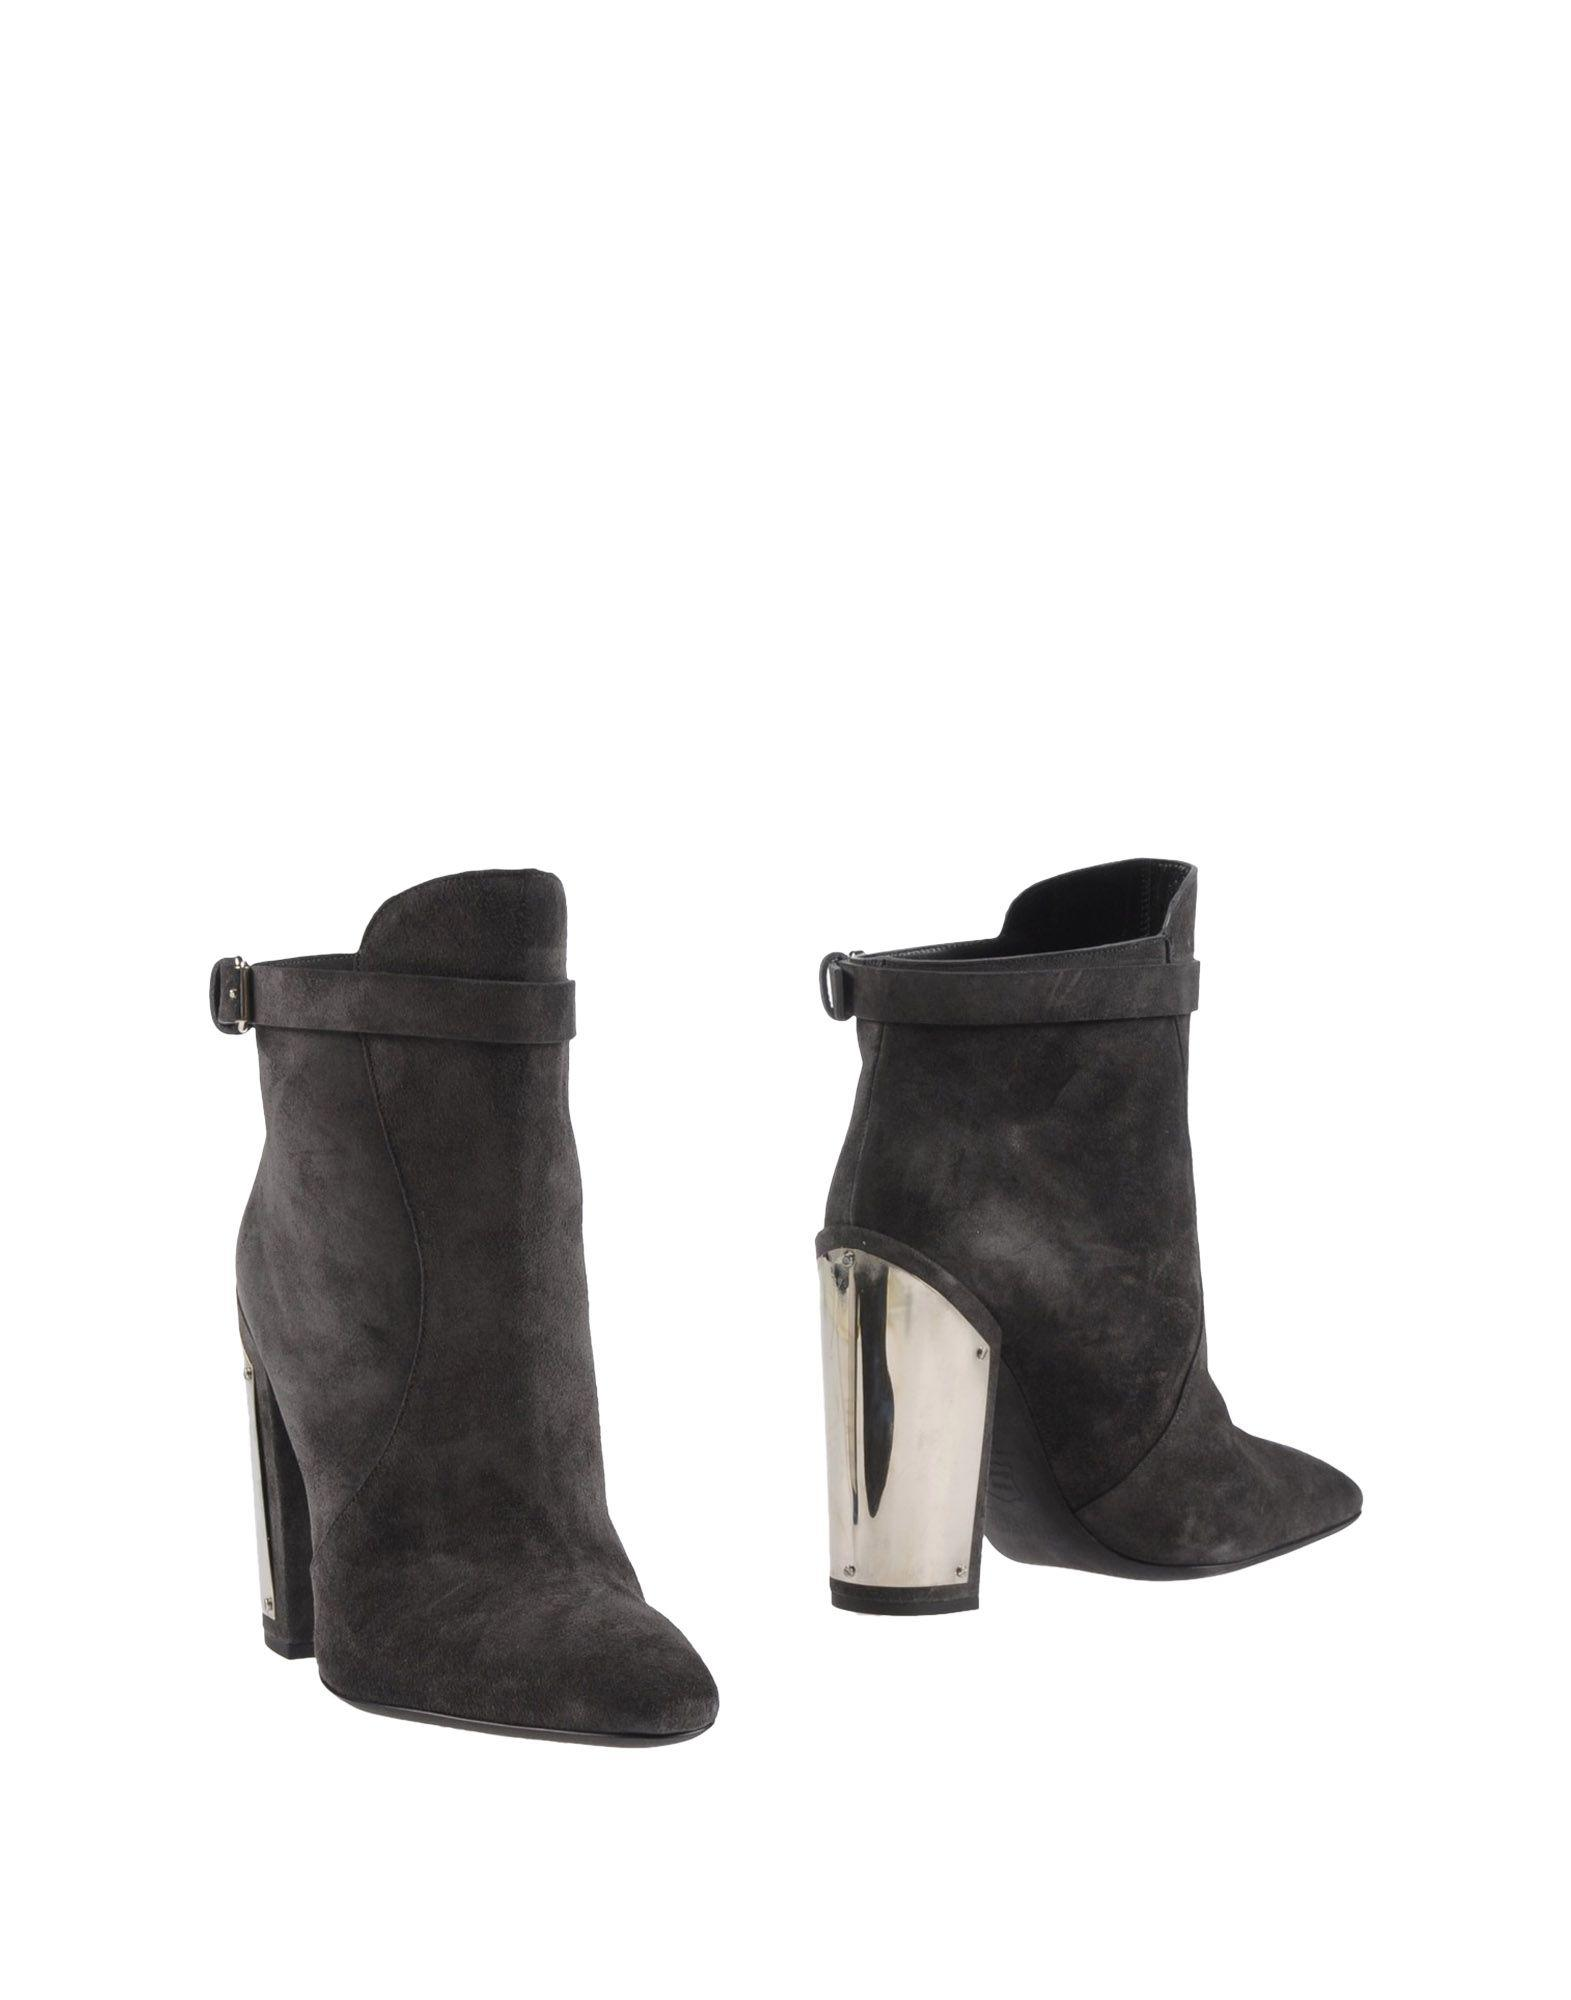 Giambattista Valli Patent Leather Ankle Boots New Arrival 9wfa3W